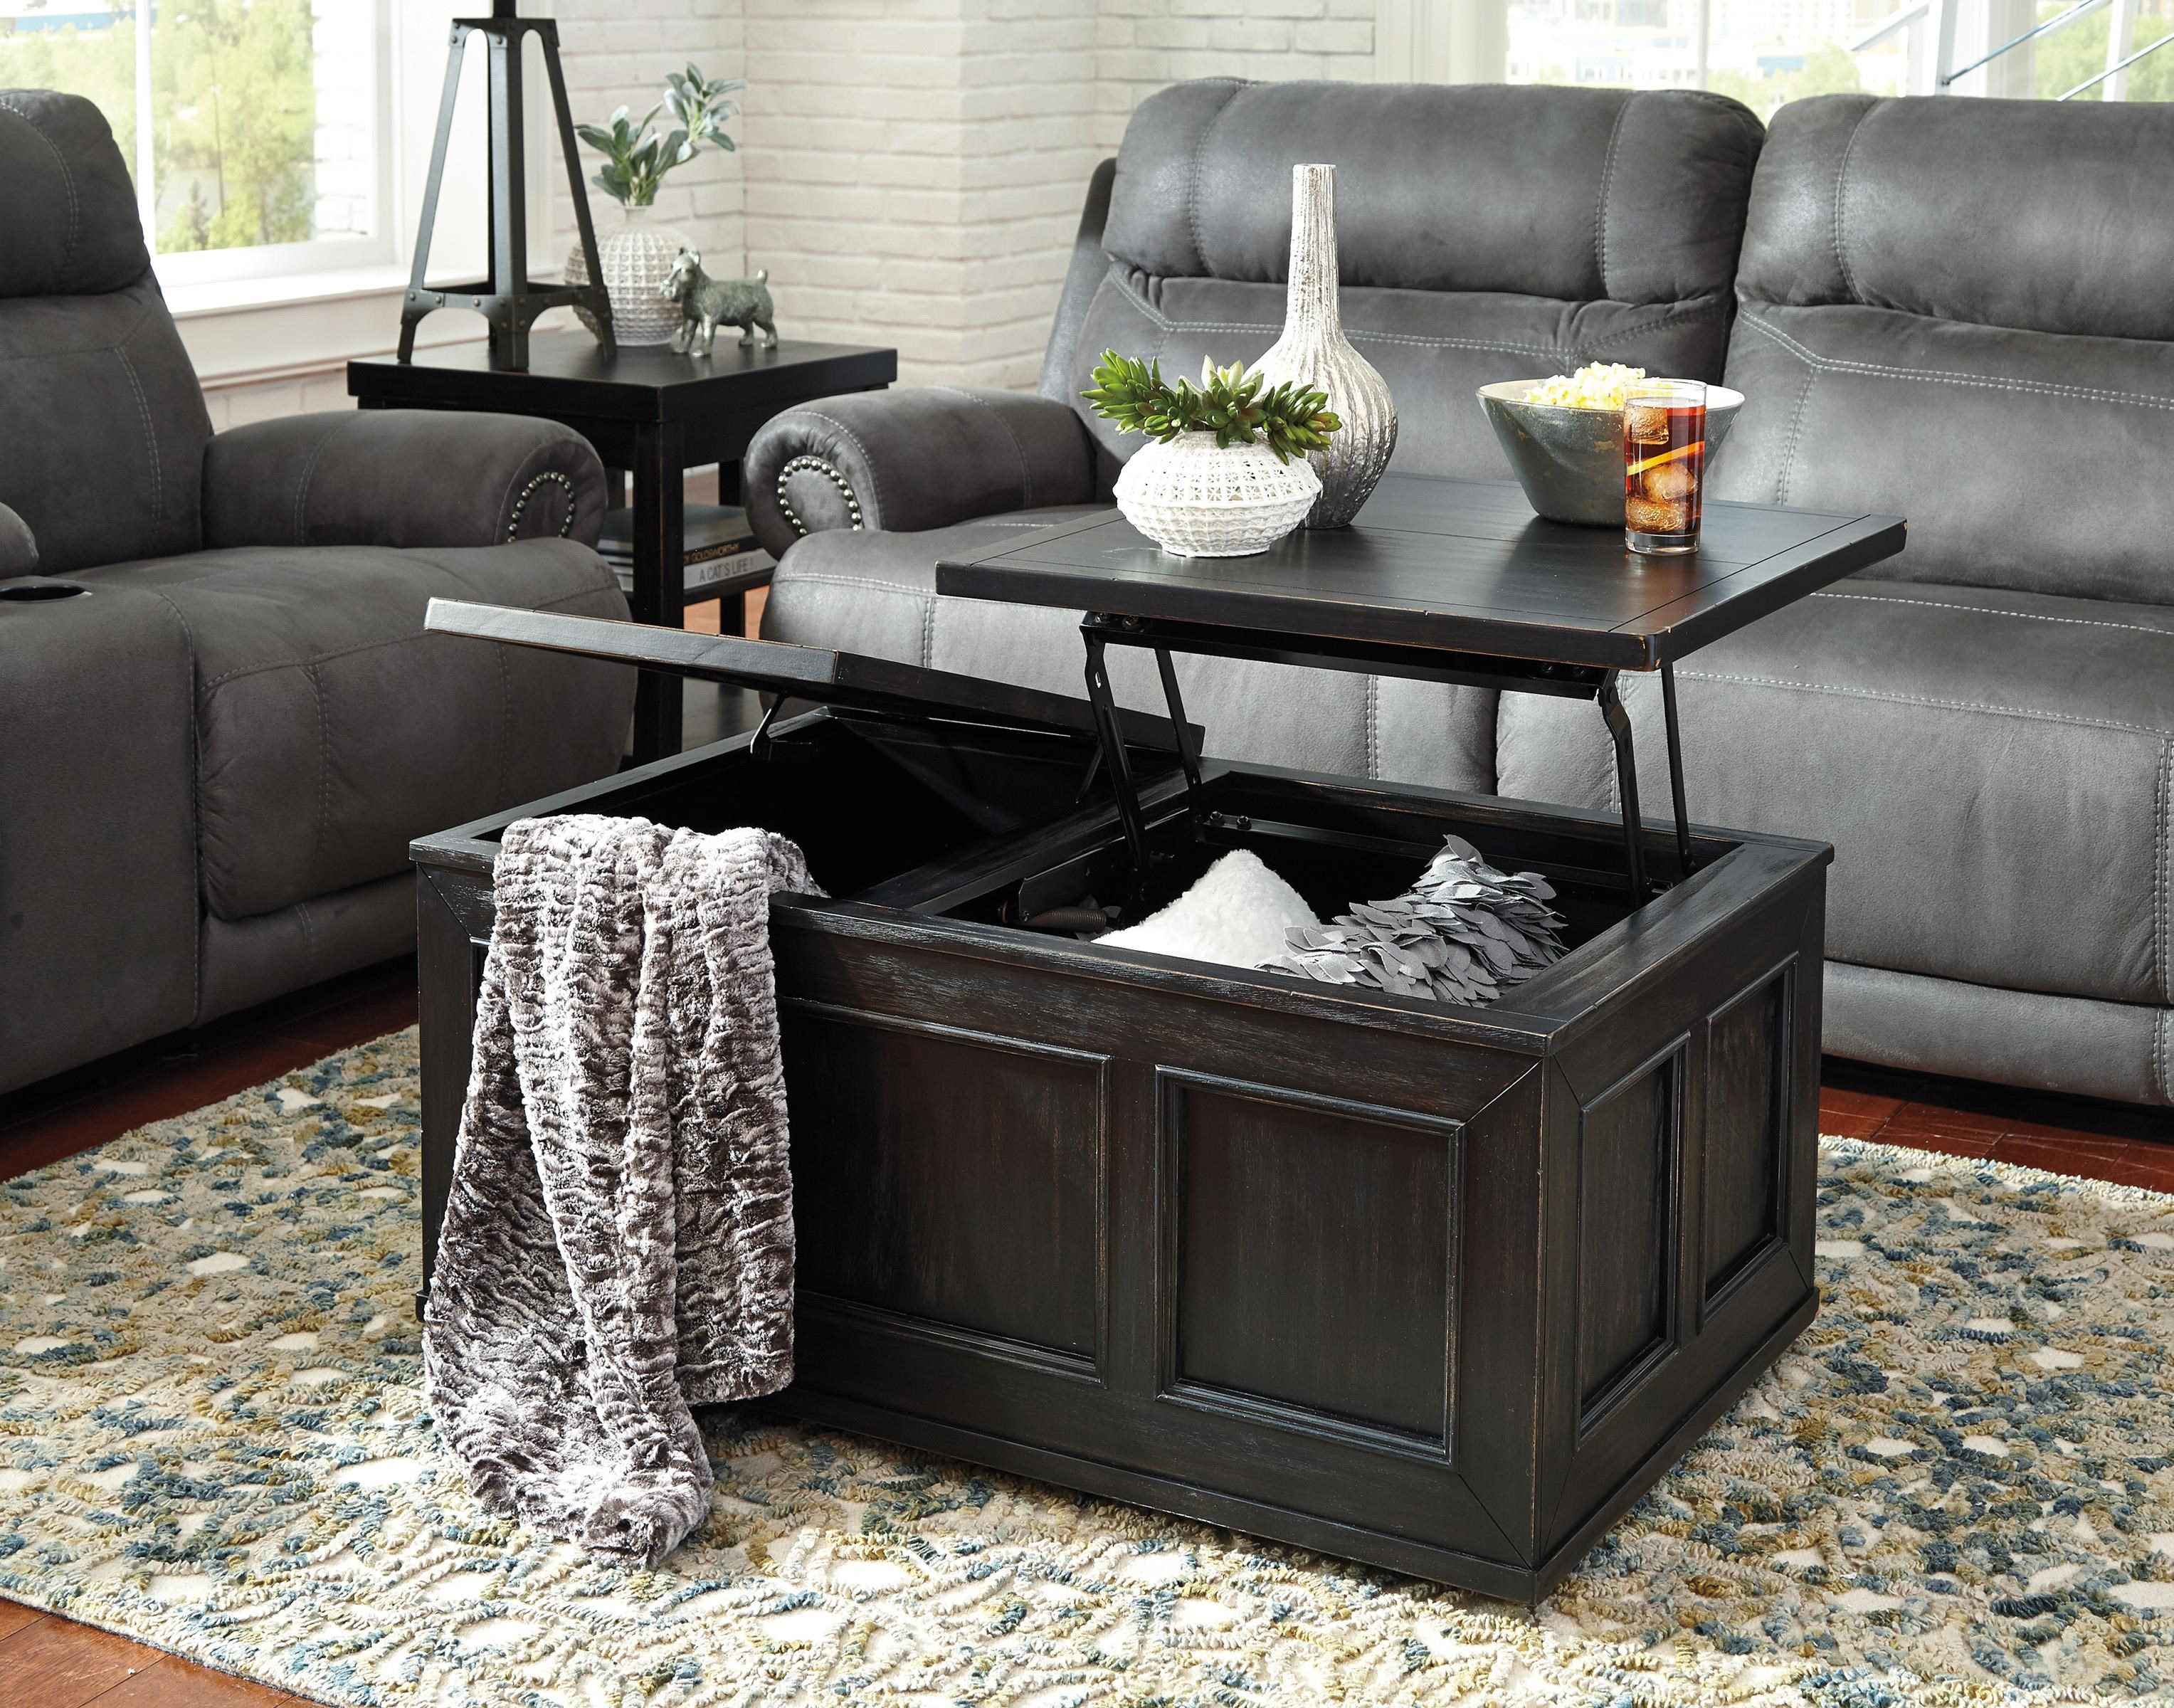 Nice Gavelston T752 9 Rustic Distressed Black Trunk Style Lift Top Cocktail Table  W/ Casters By Signature Design By Ashley